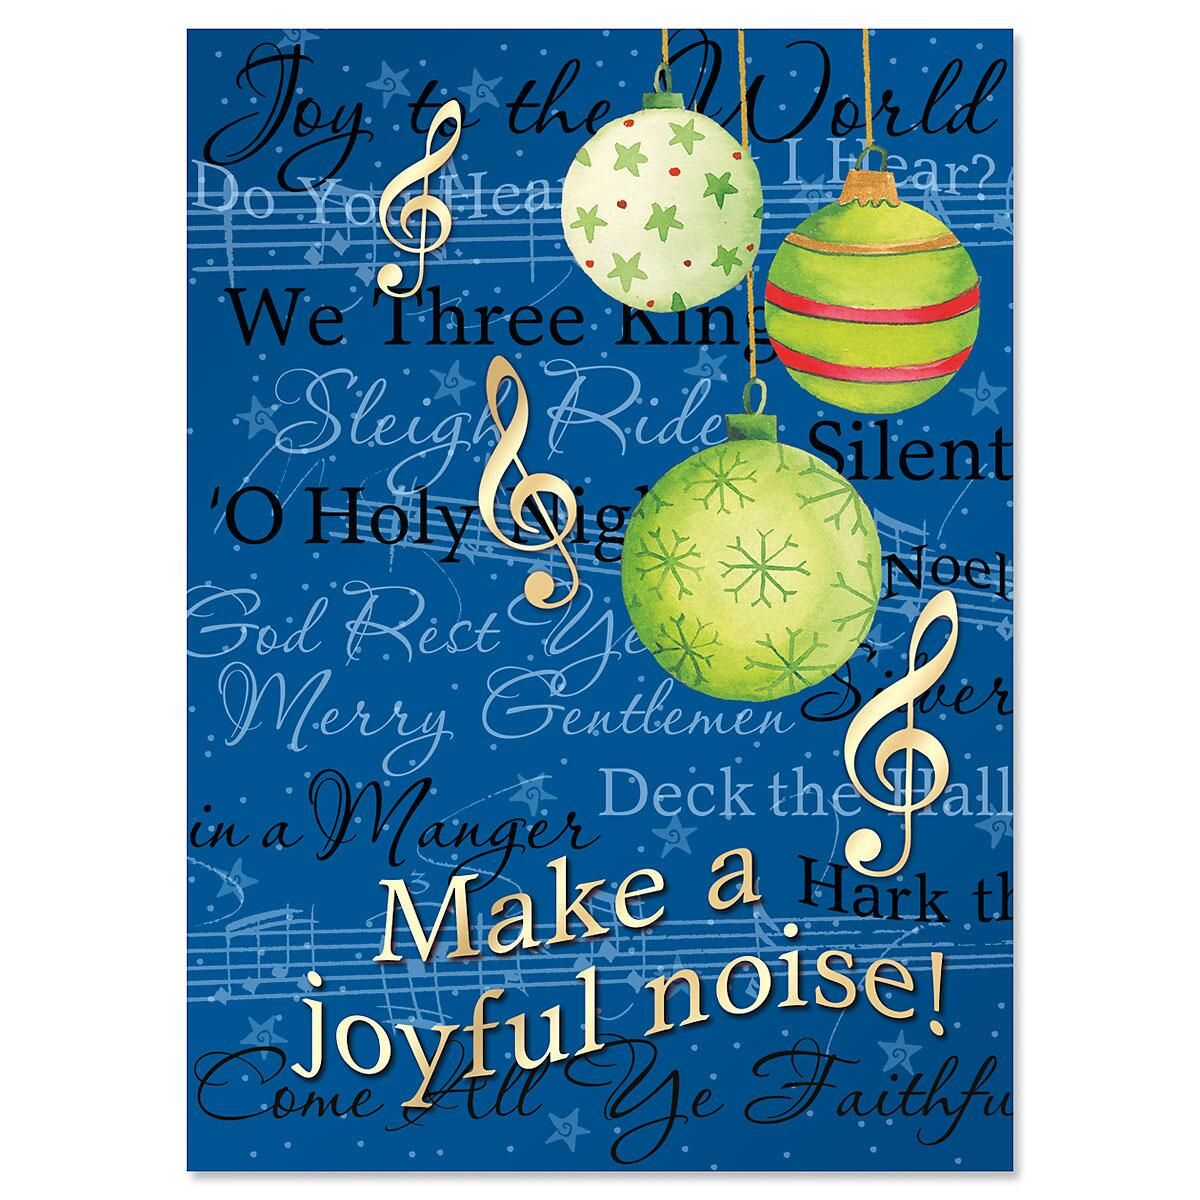 Songs of the Season Nonpersonalized Christmas Cards - Set of 72